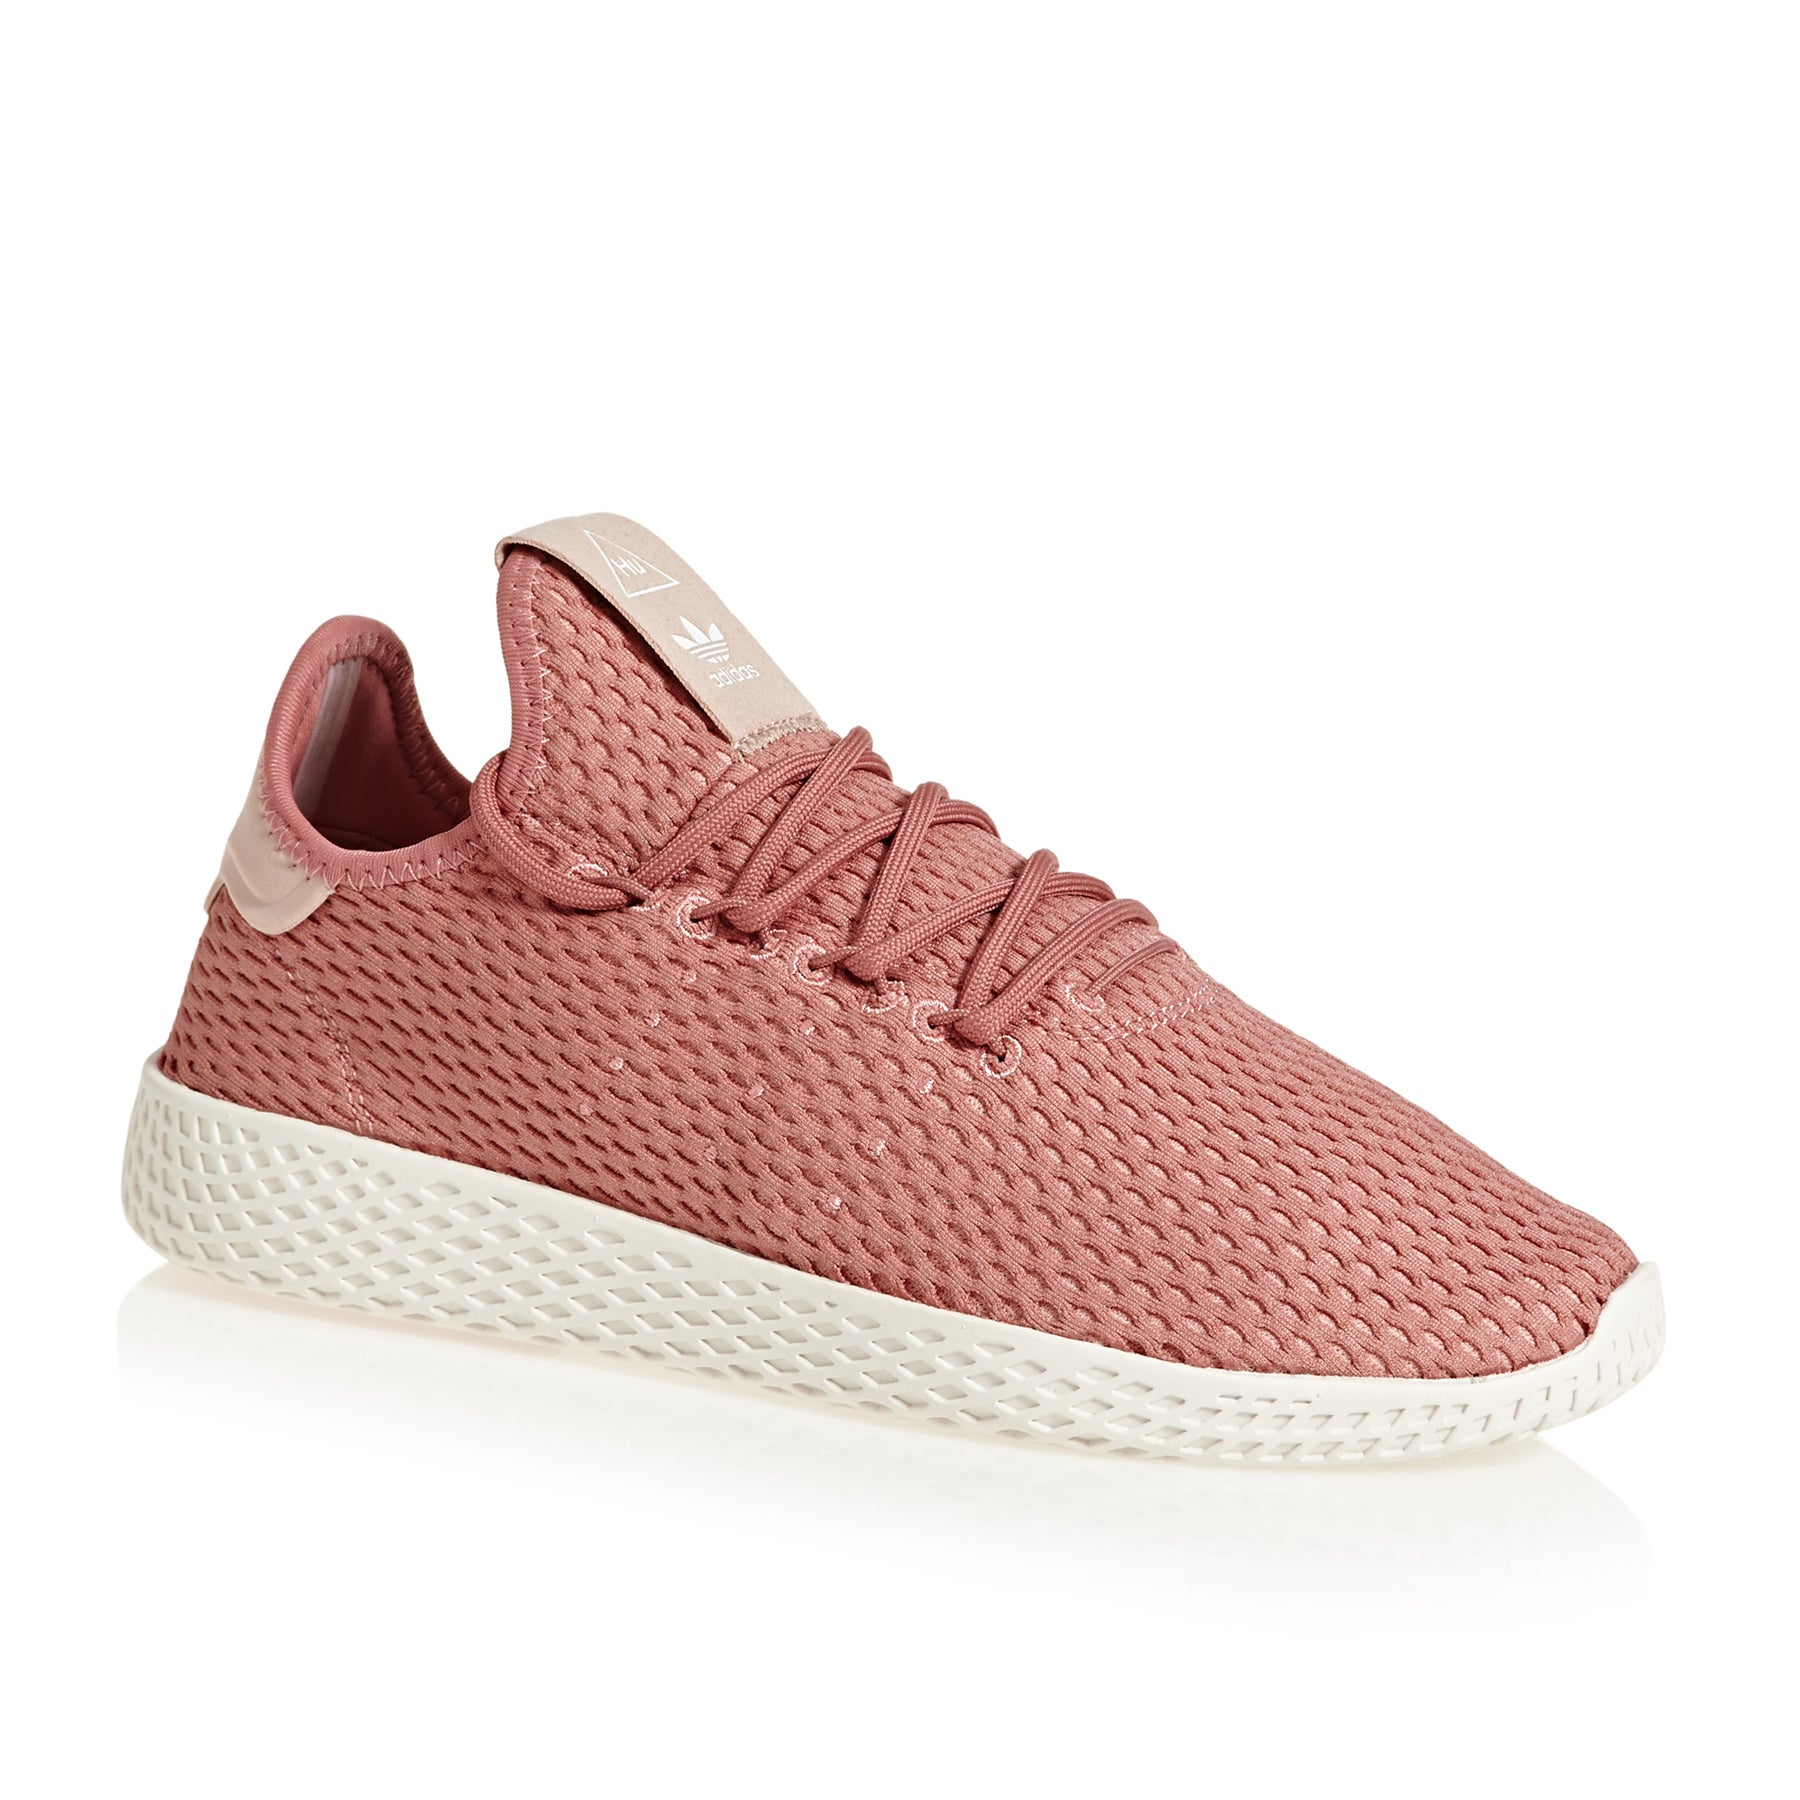 de03f9742d822 Adidas Originals PW Tennis HU Womens Shoes available from Surfdome